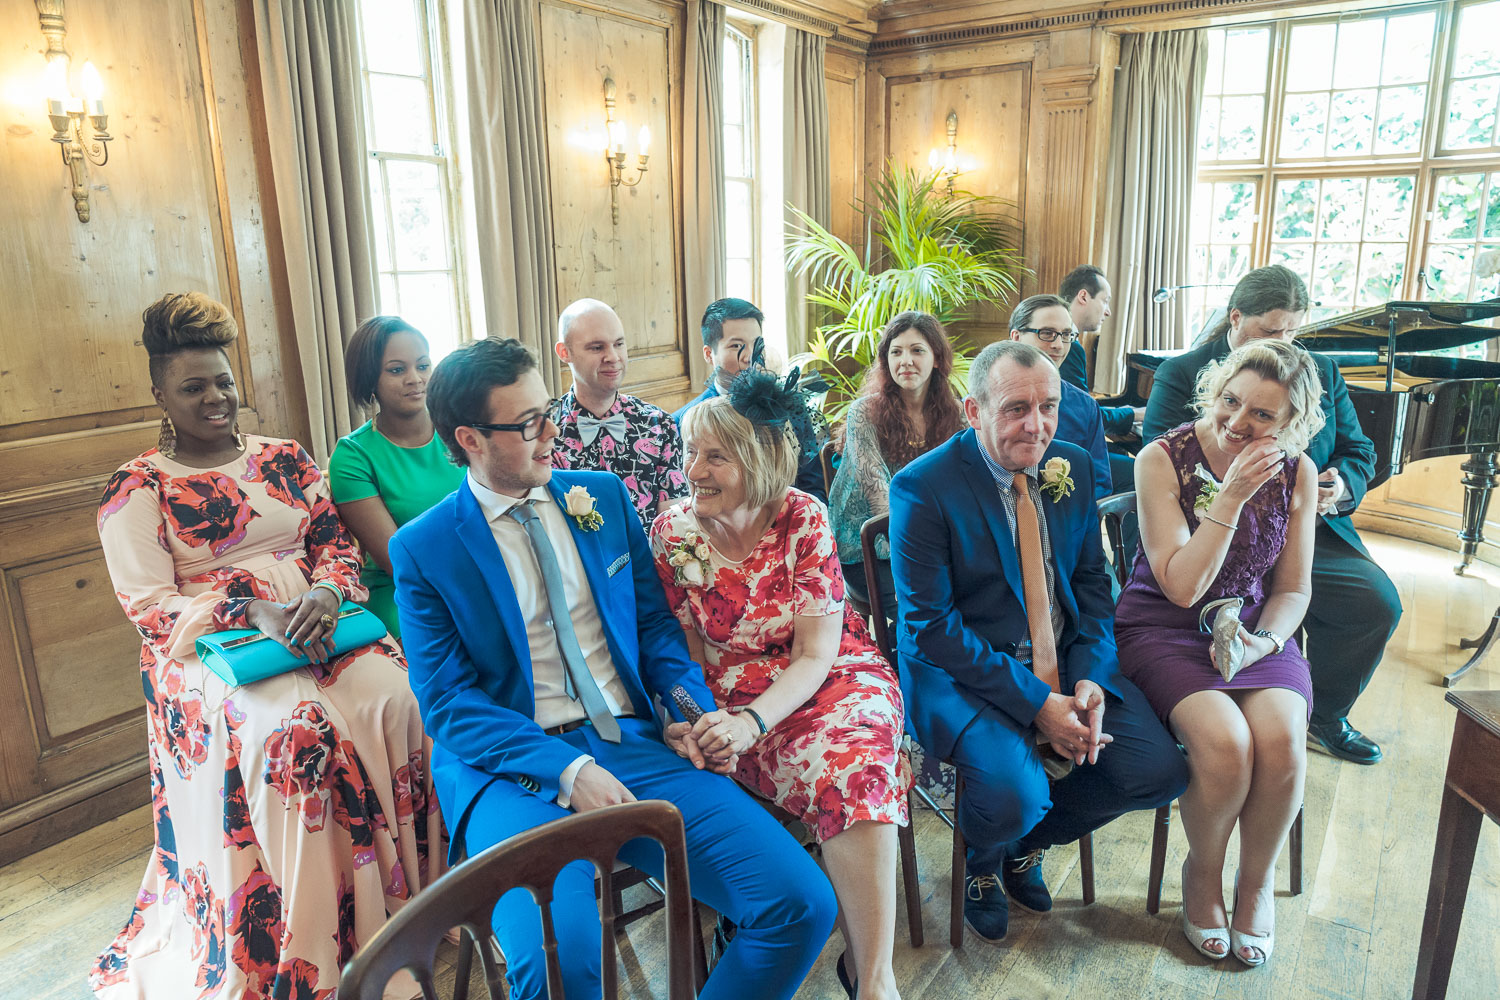 burgh-house-hampstead-north-london-wedding-0076.jpg